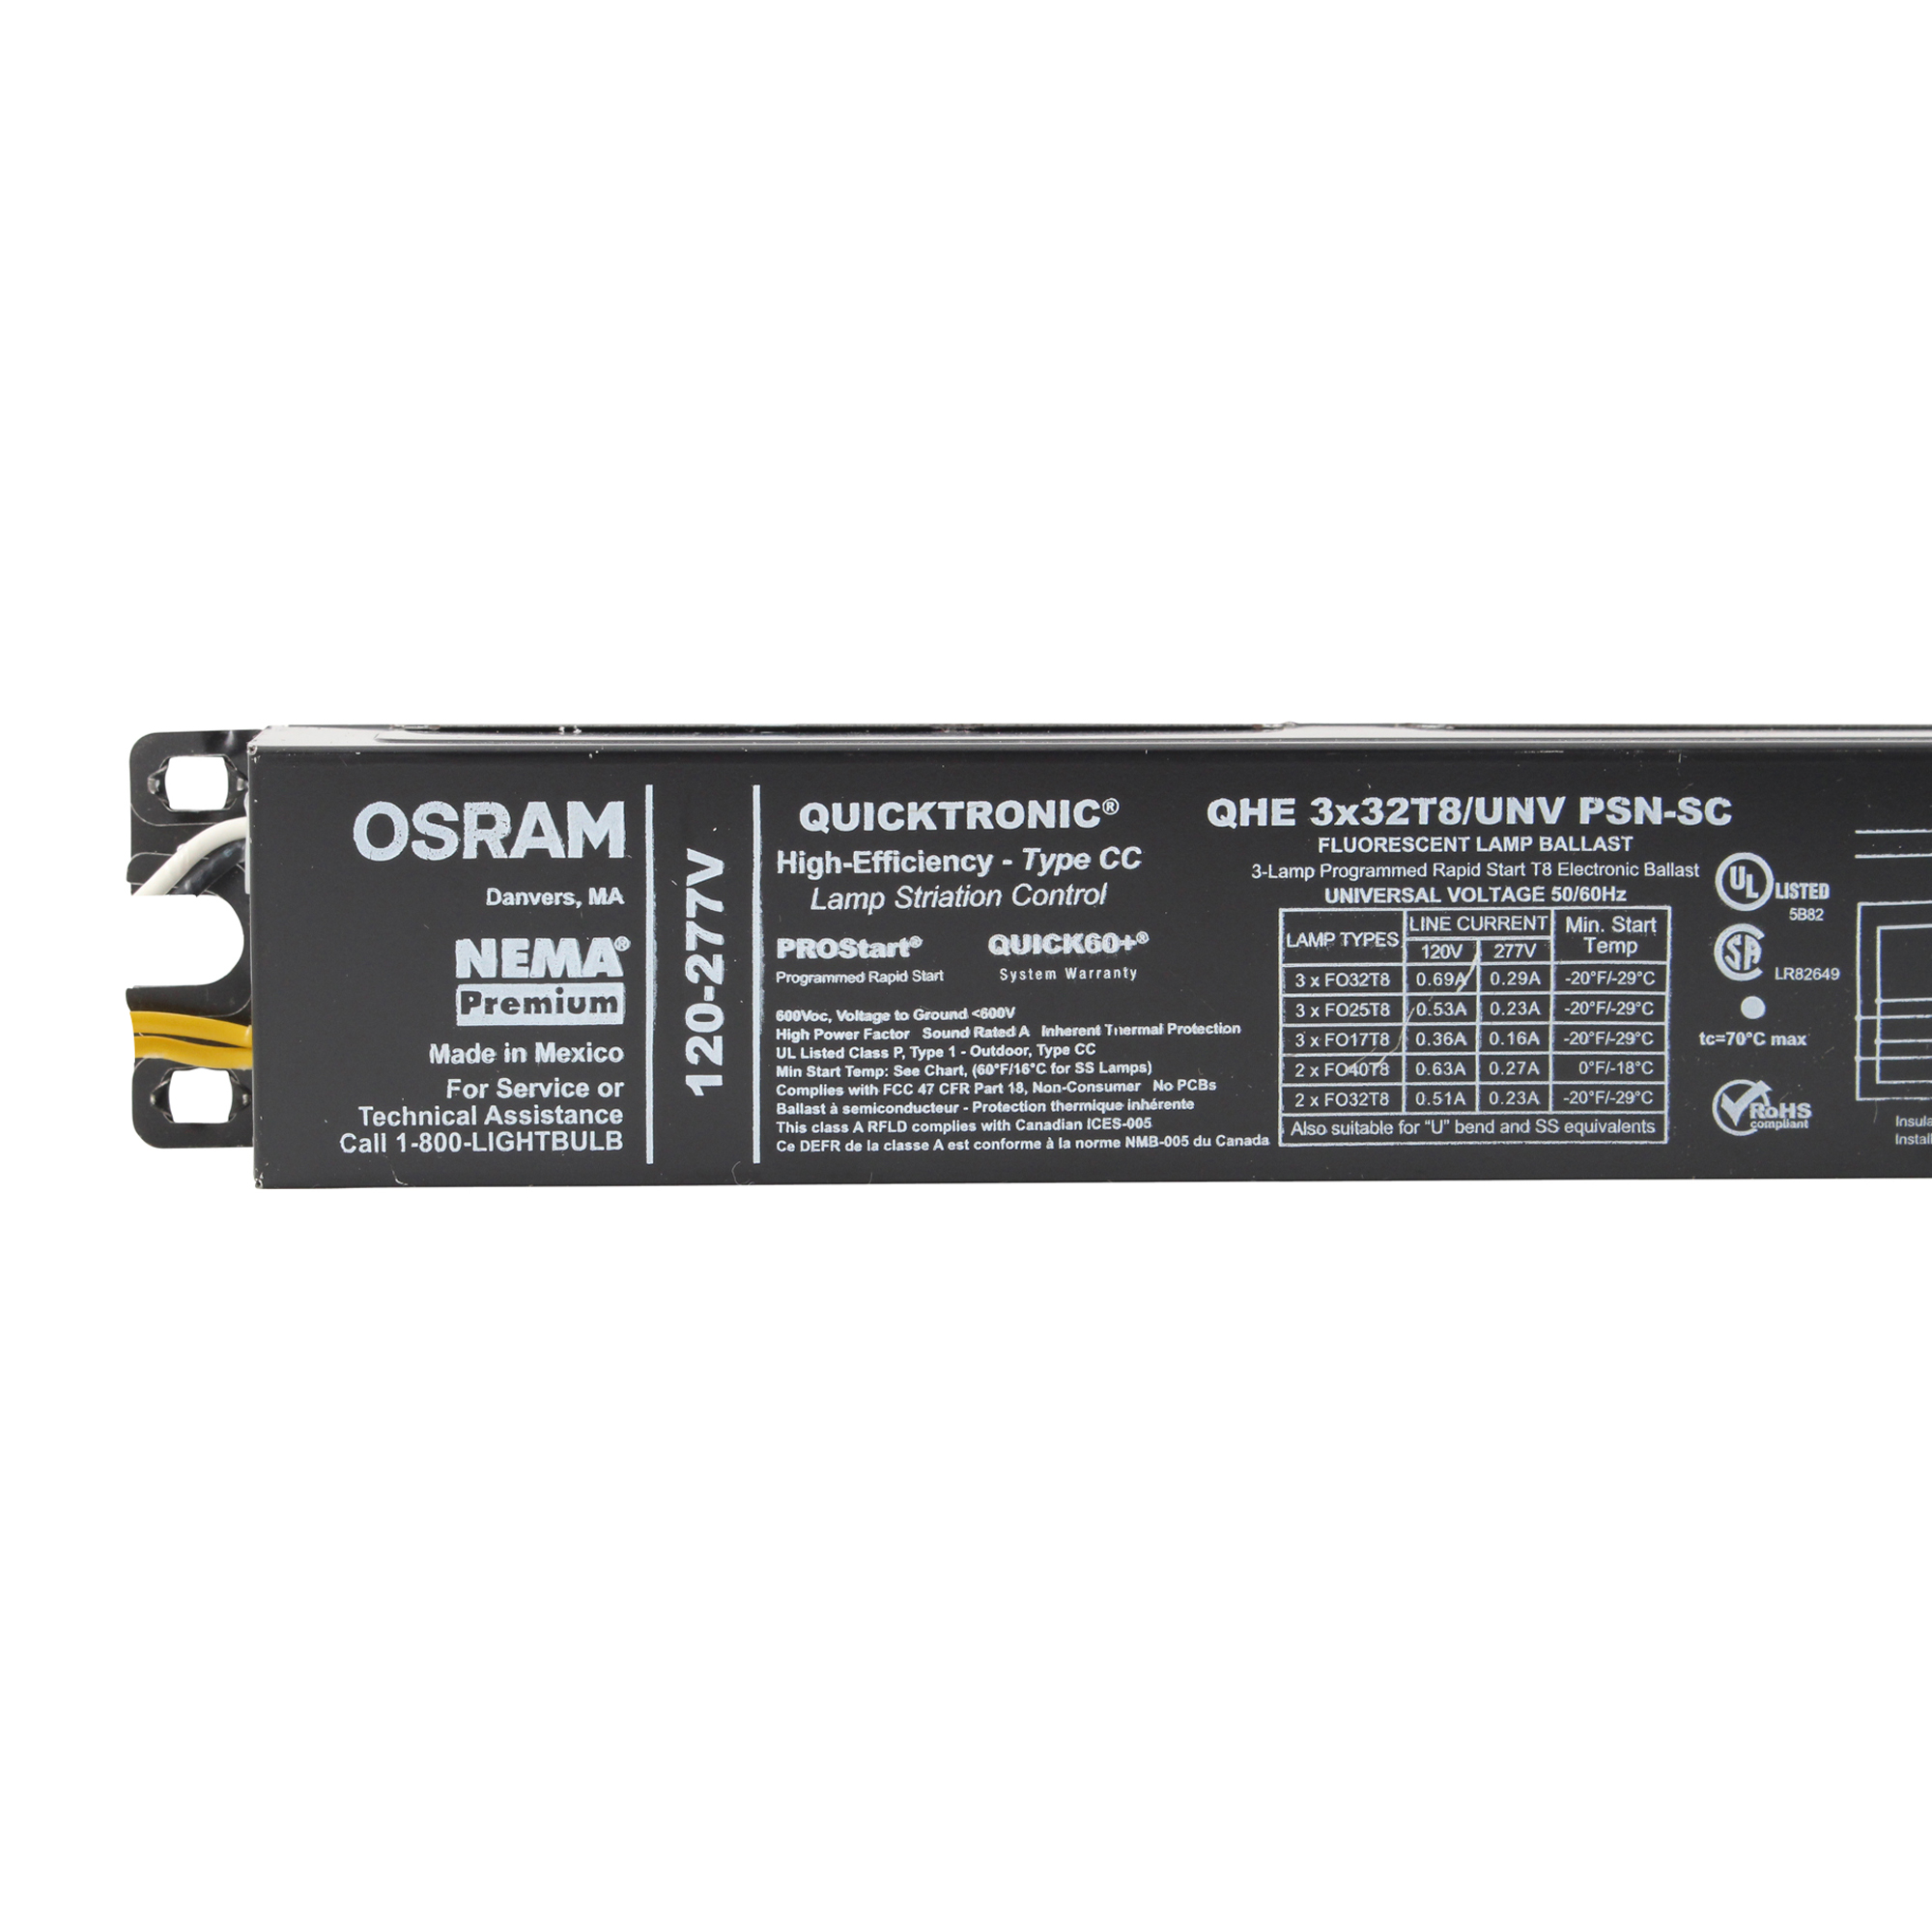 Osram Quicktronic Ballast QHE3X32T8//UNV ISN-SC-HIGH EFFICIENCY LAMP STRIATION